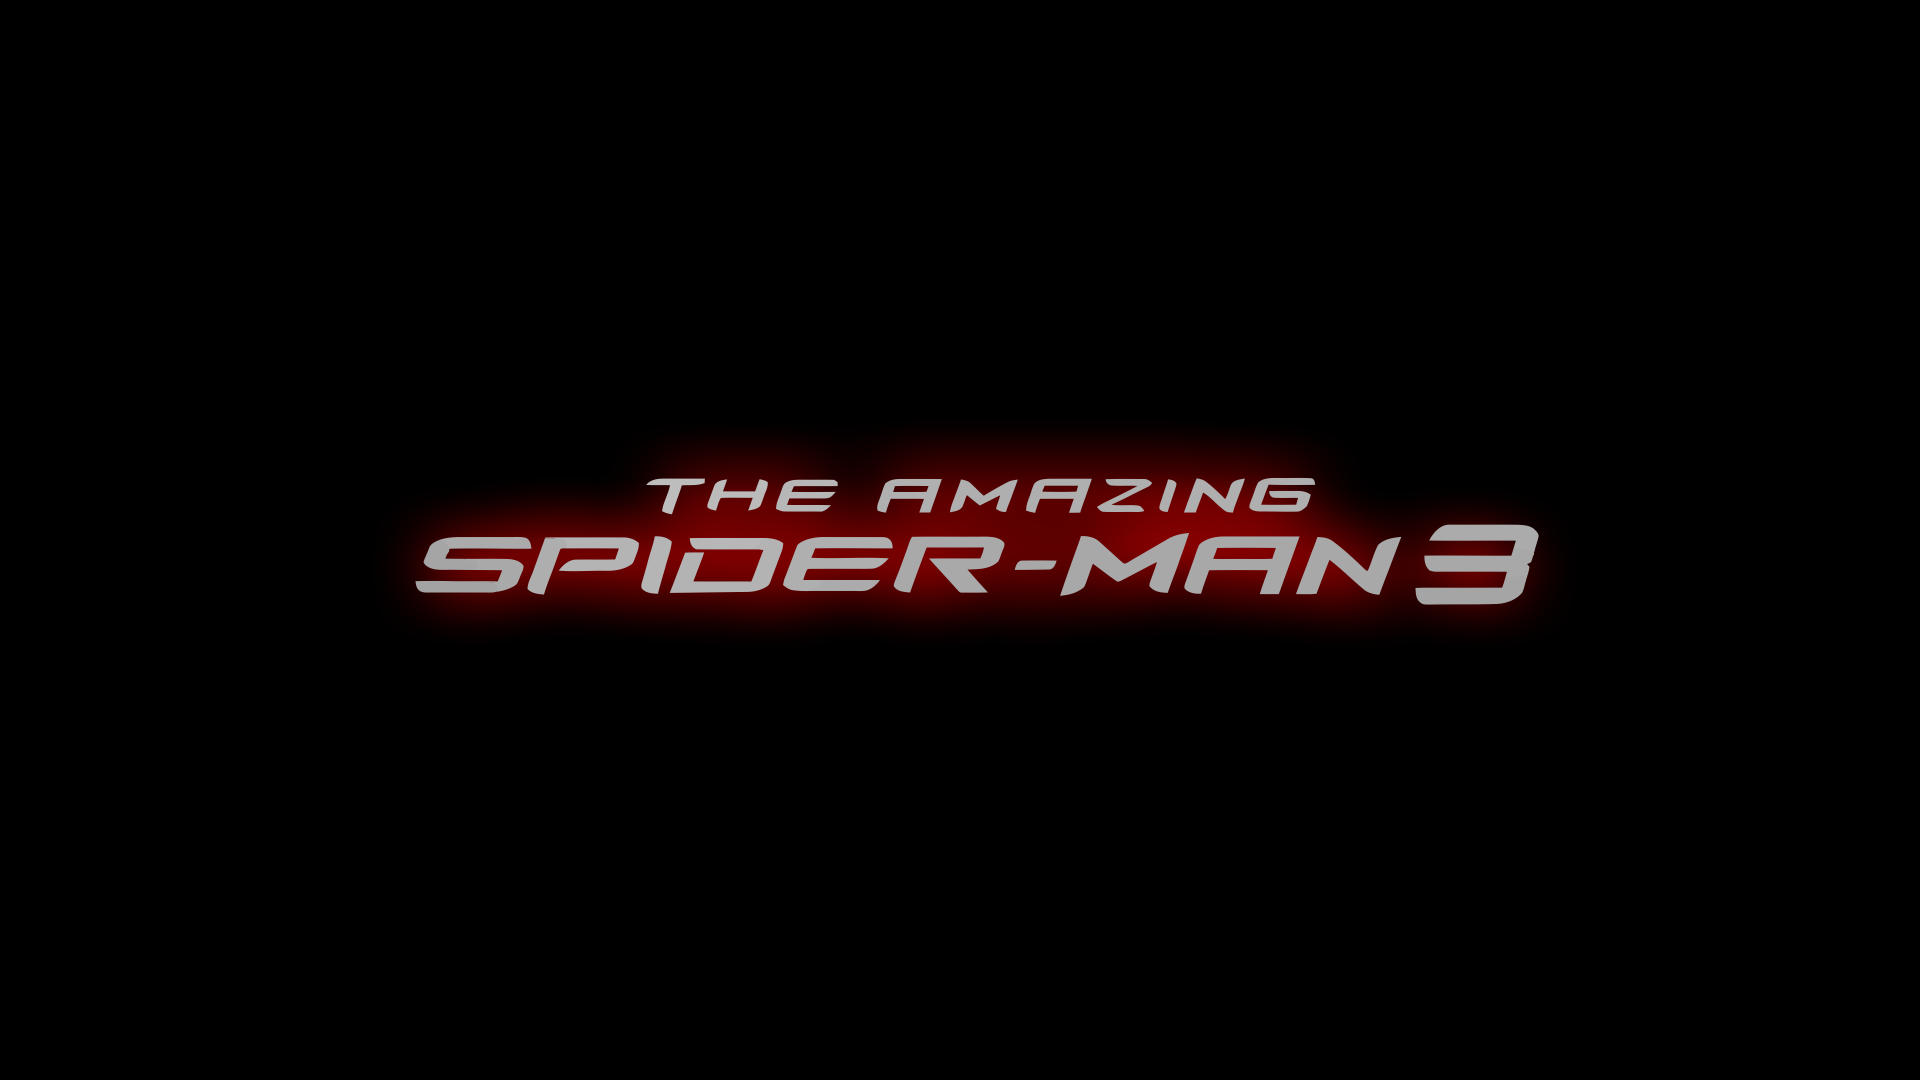 The amazing spider man logo - photo#15